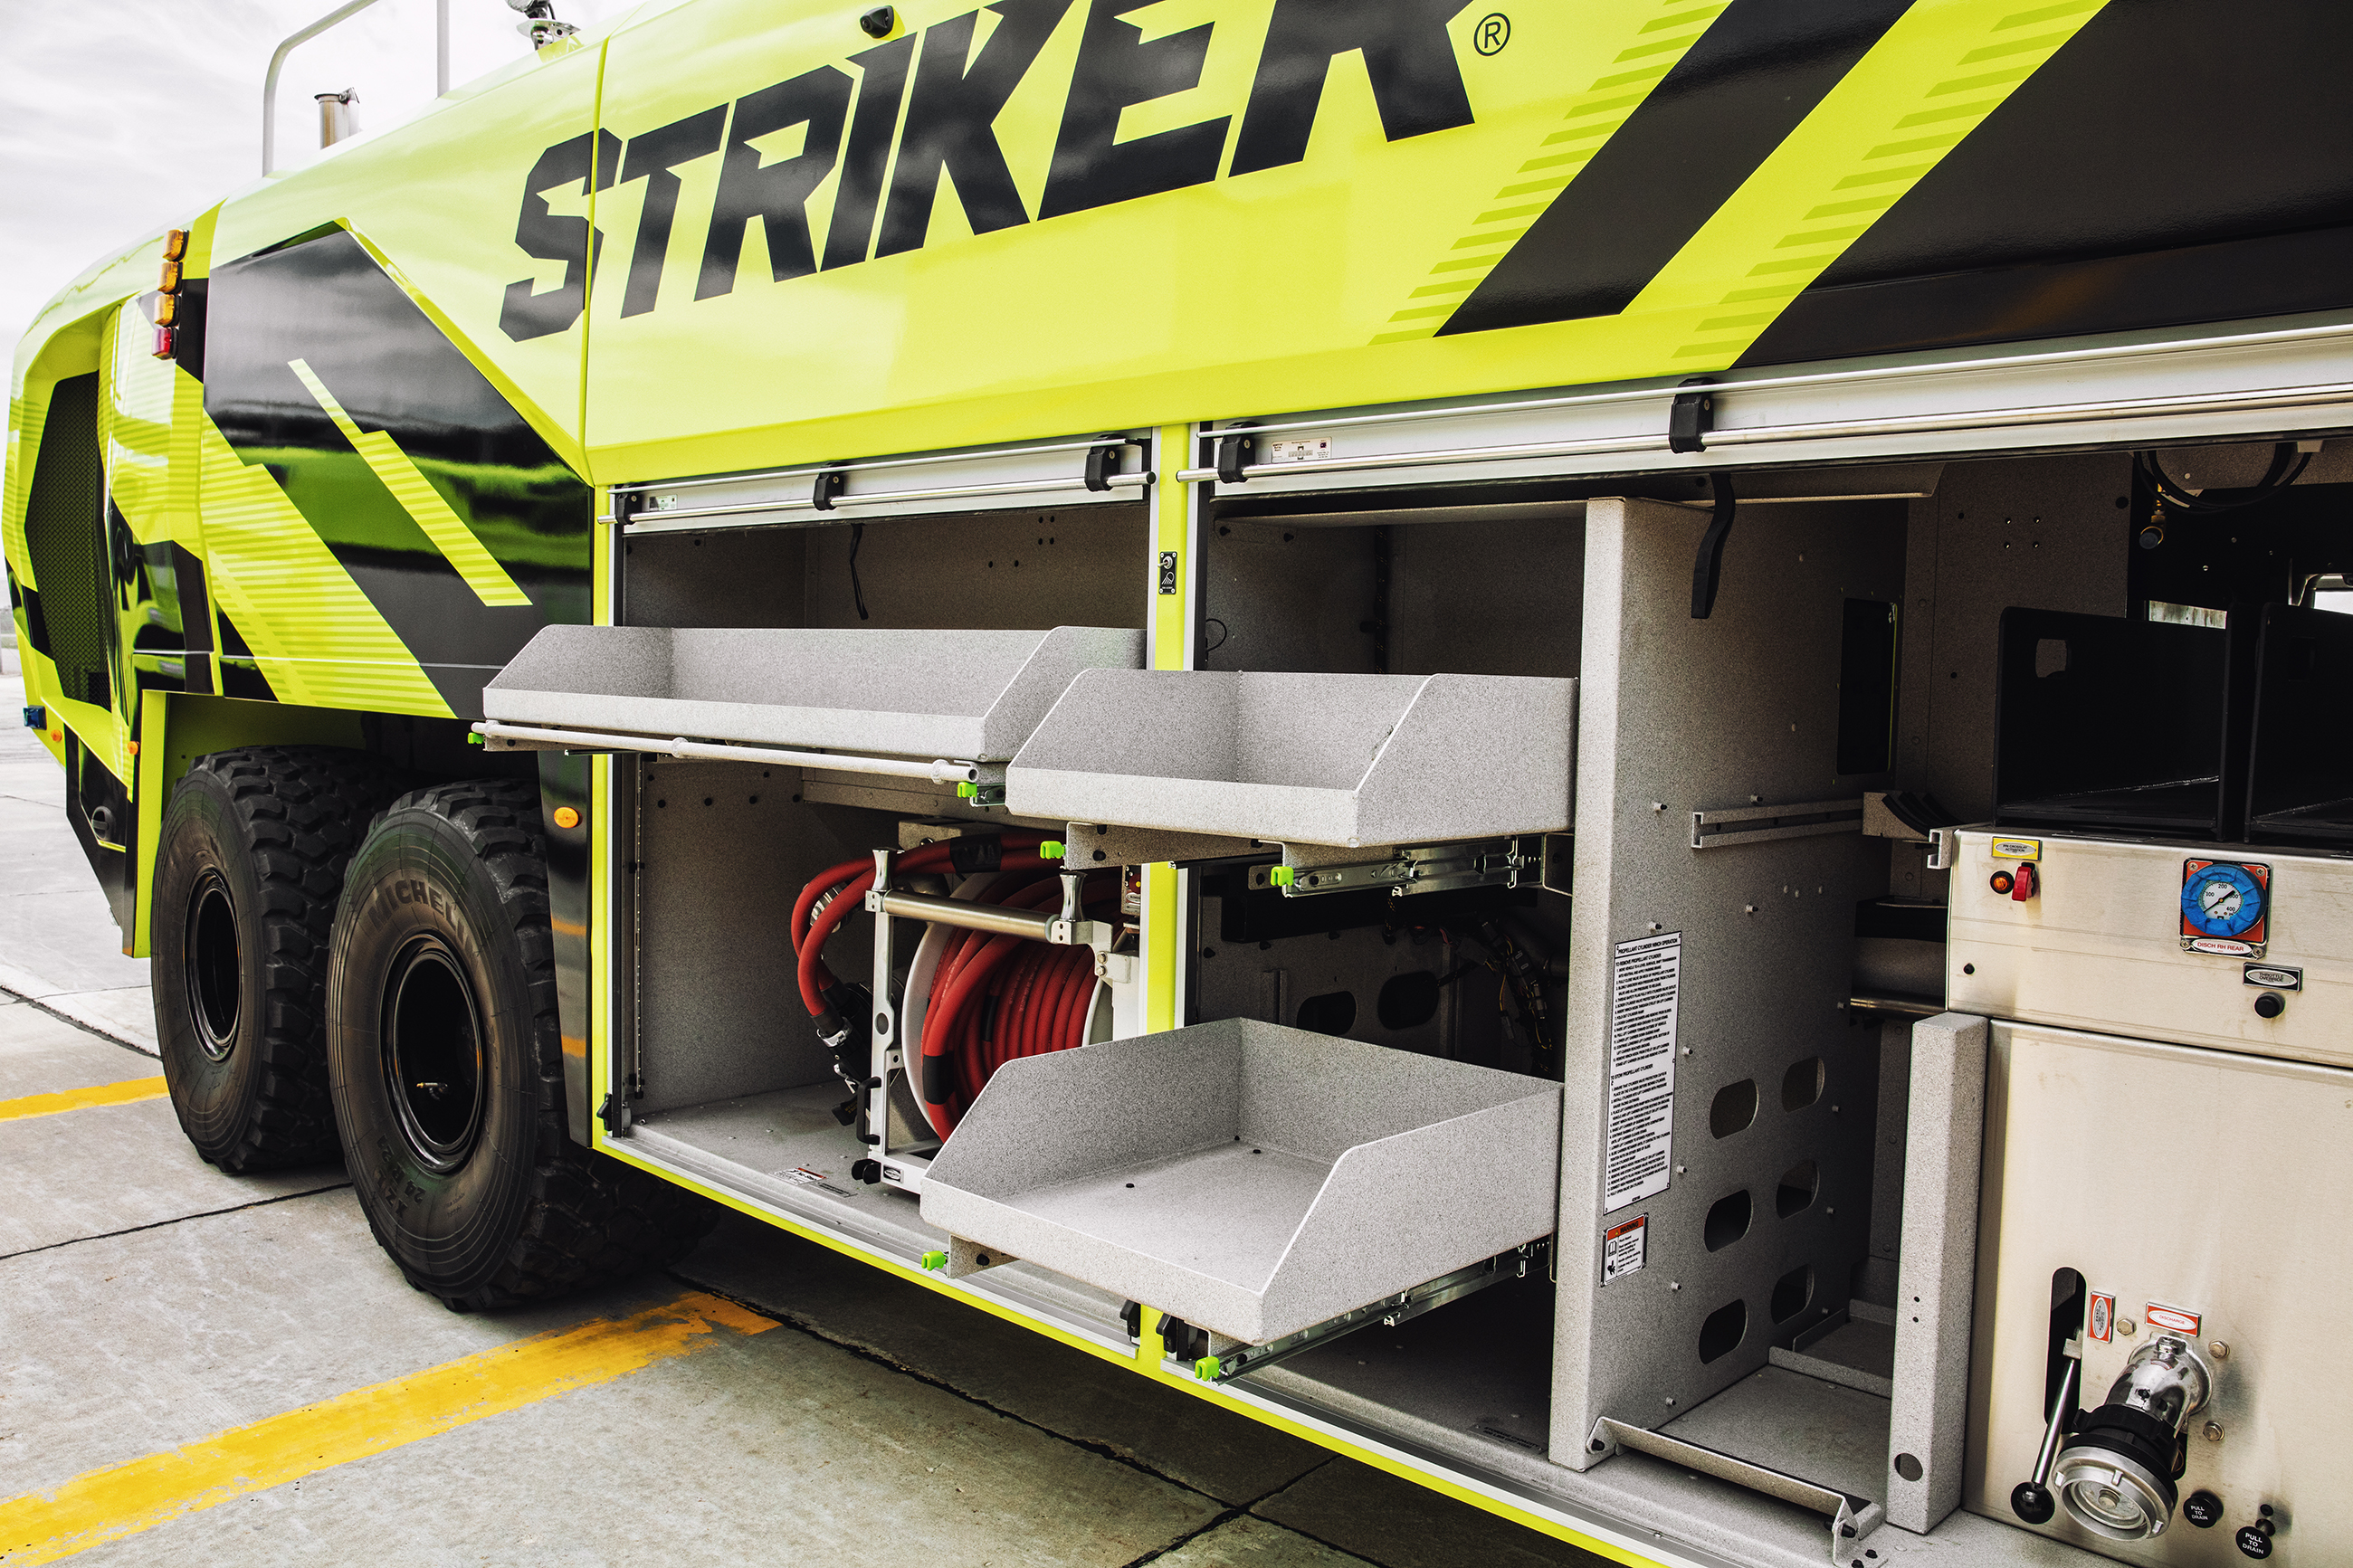 ARFF Striker Compartment Side Shot